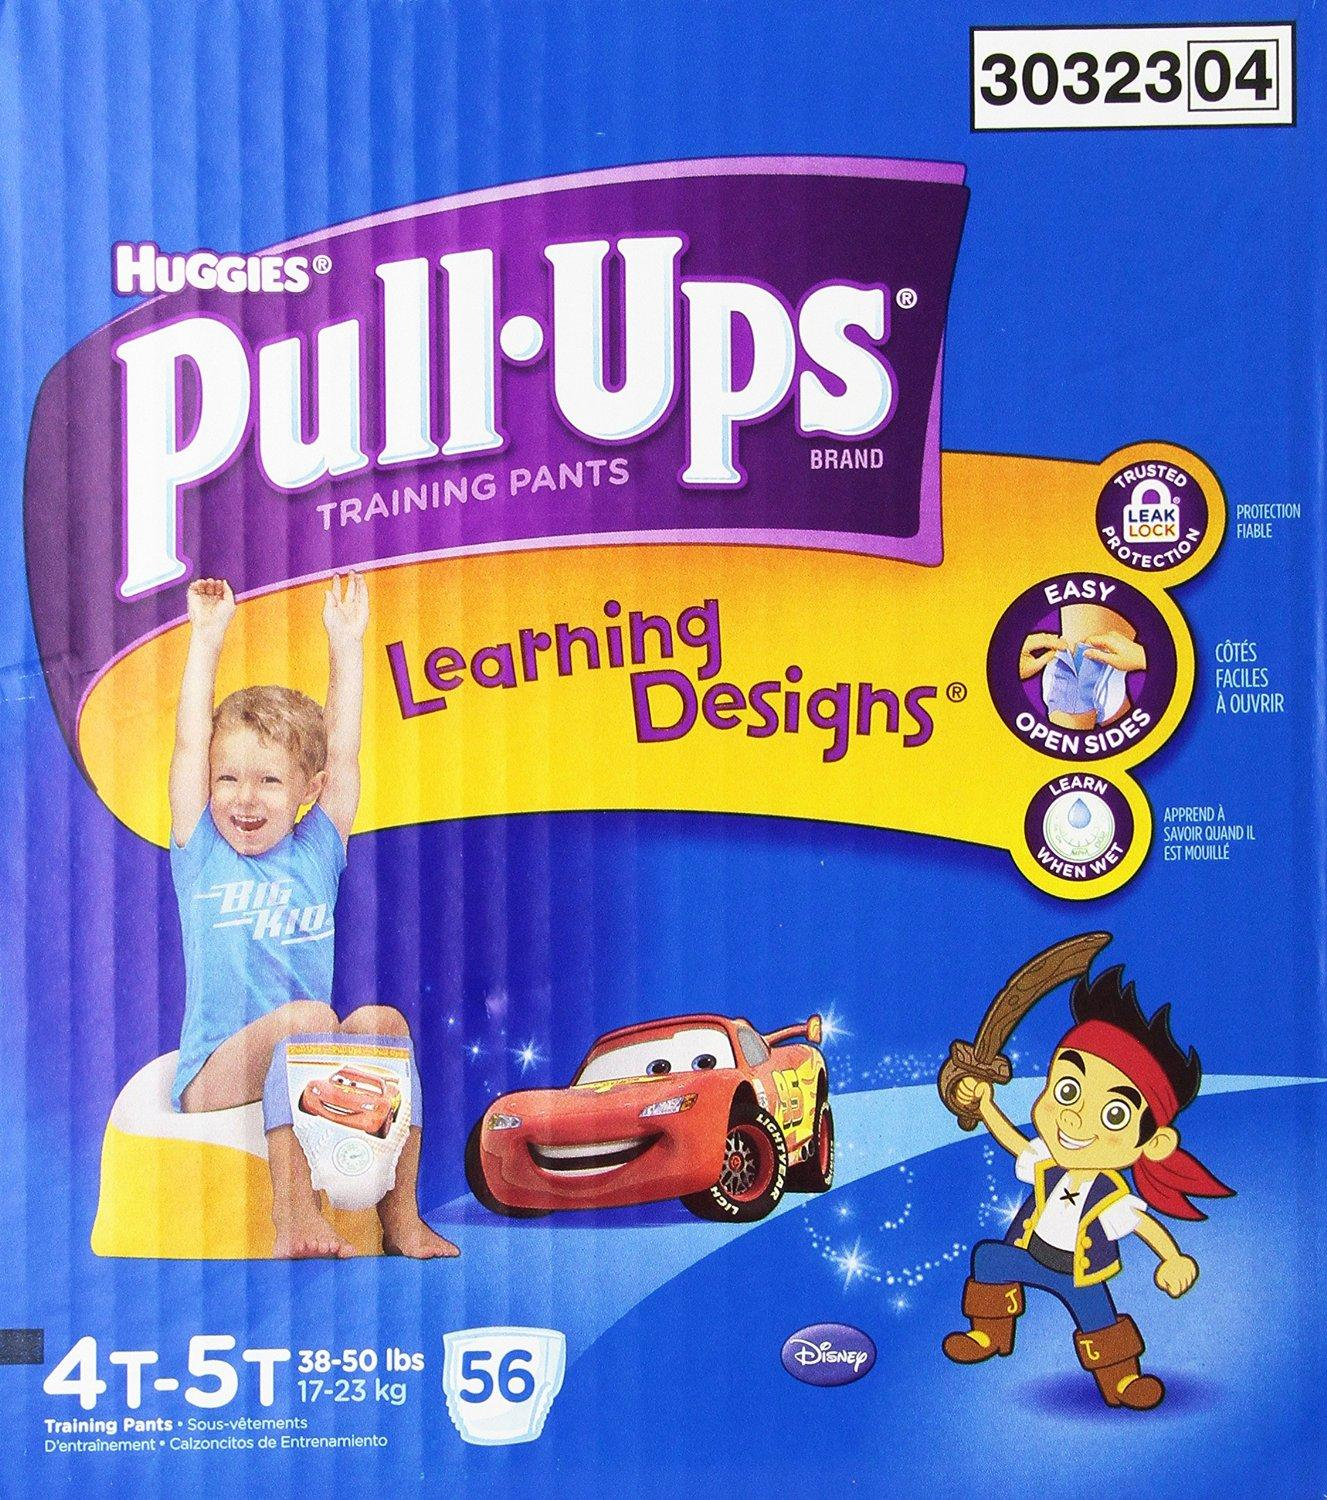 $15.72 Huggies Pull-Ups Training Pants with Learning Designs for Boys, 4T-5T, 56 Count